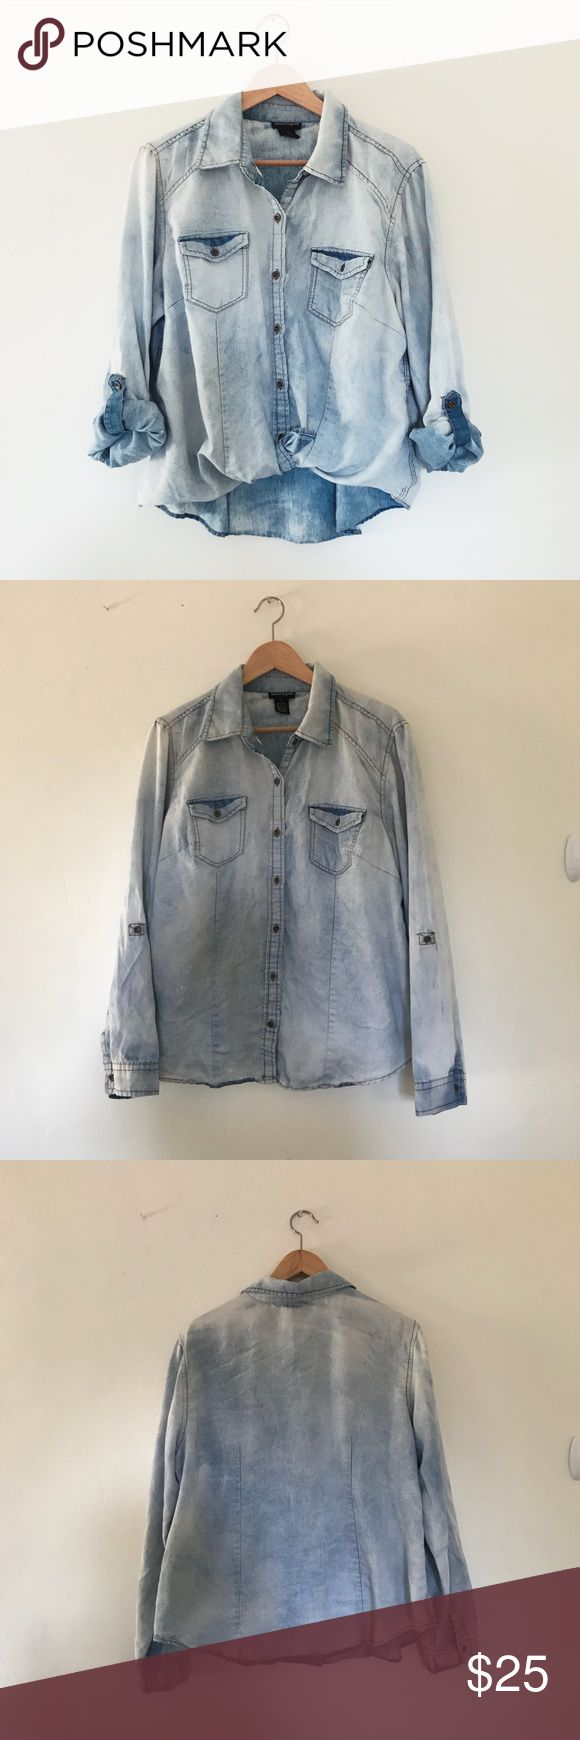 Distressed Button Down Acid Wash Distressed Button Down shirt in good preowned condition. This is a plus size shirt, about the same as a large, but I wear it as an oversized slouchy fit. Super cute tucked into high-waisted skinny jeans Cotton Express Tops Button Down Shirts